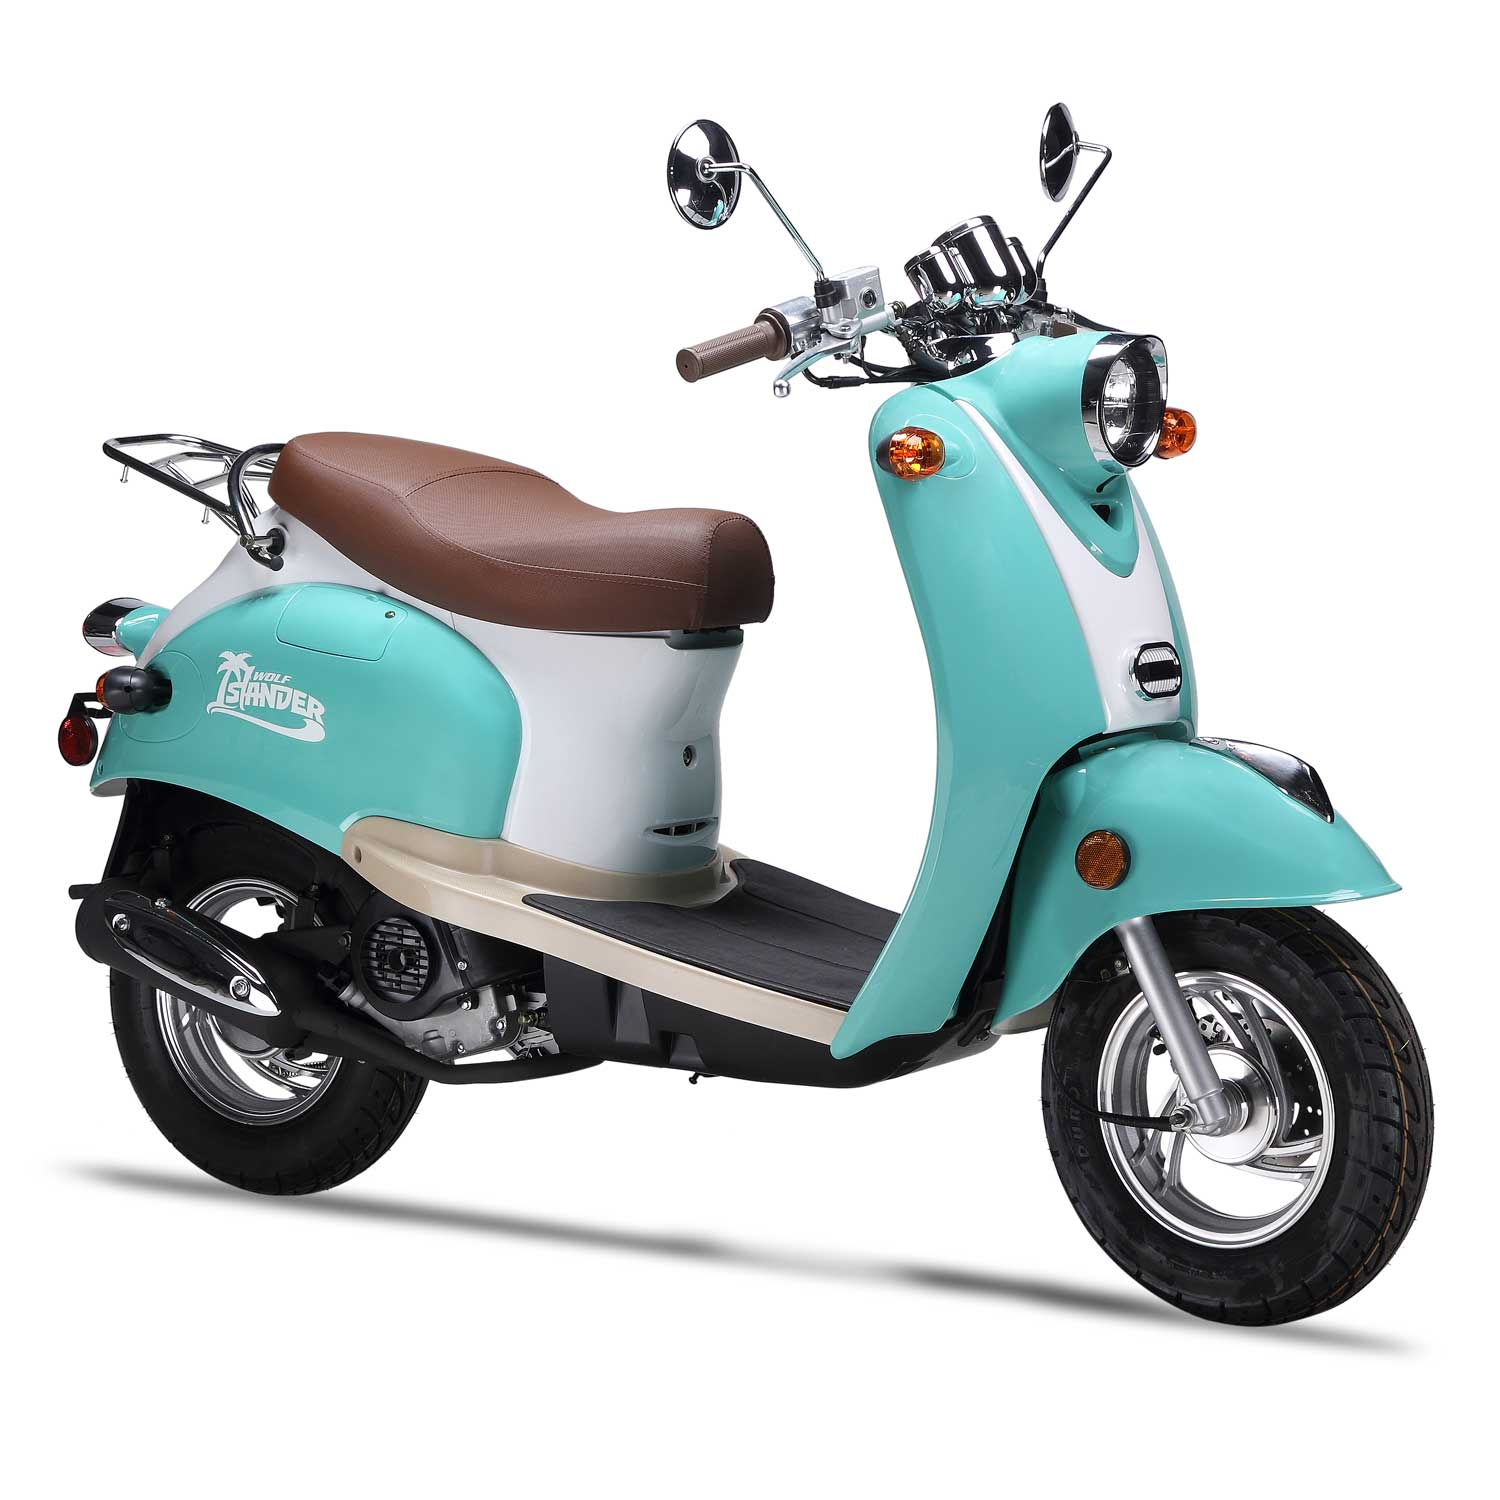 50cc Scooter Wolf Islander - 50cc Scooter